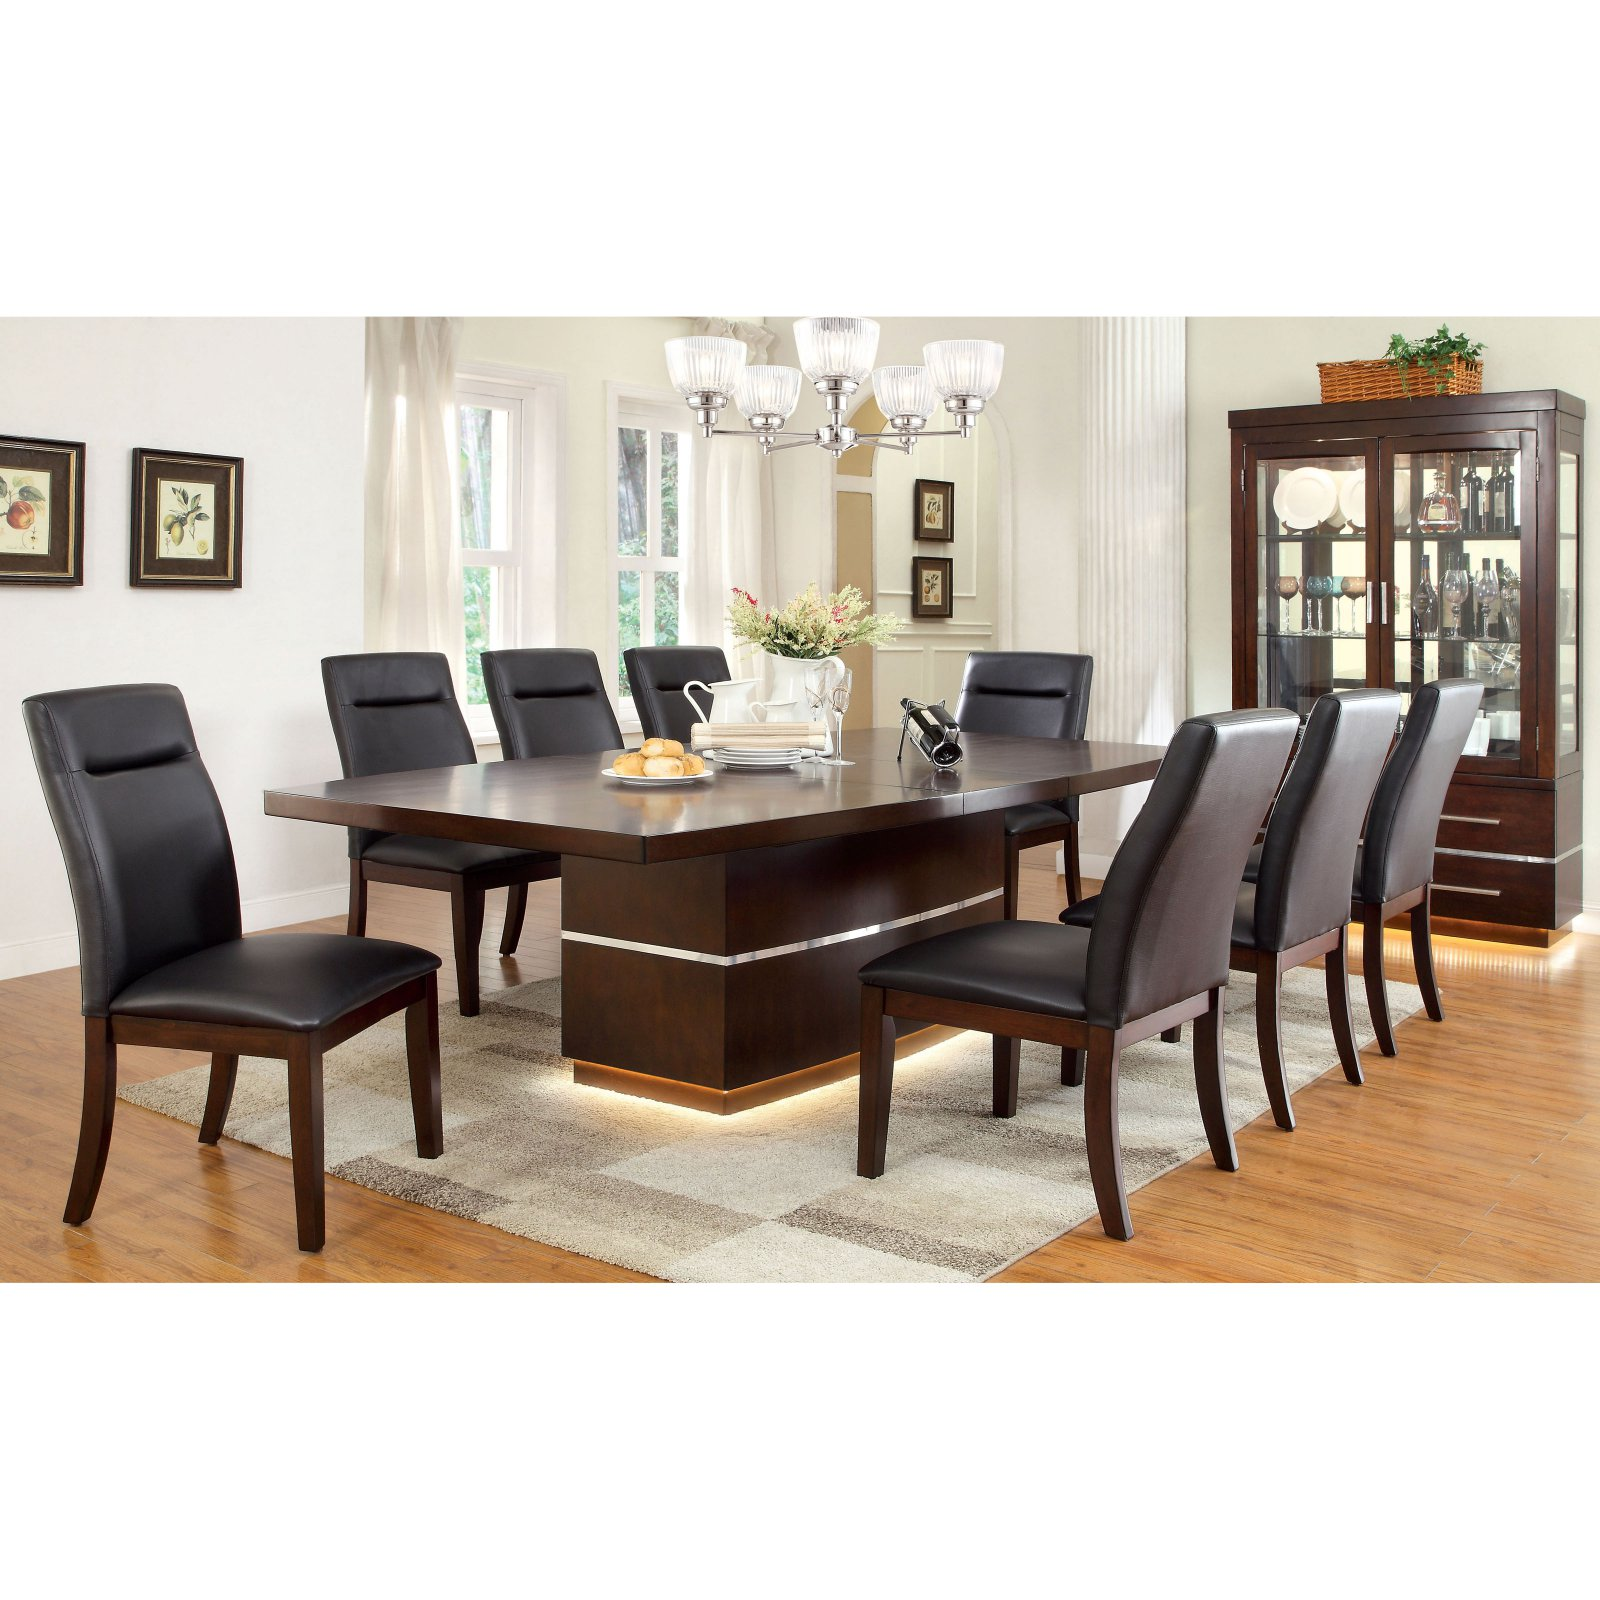 Furniture of America Langfield Modern Dining Table with Extension Leaf